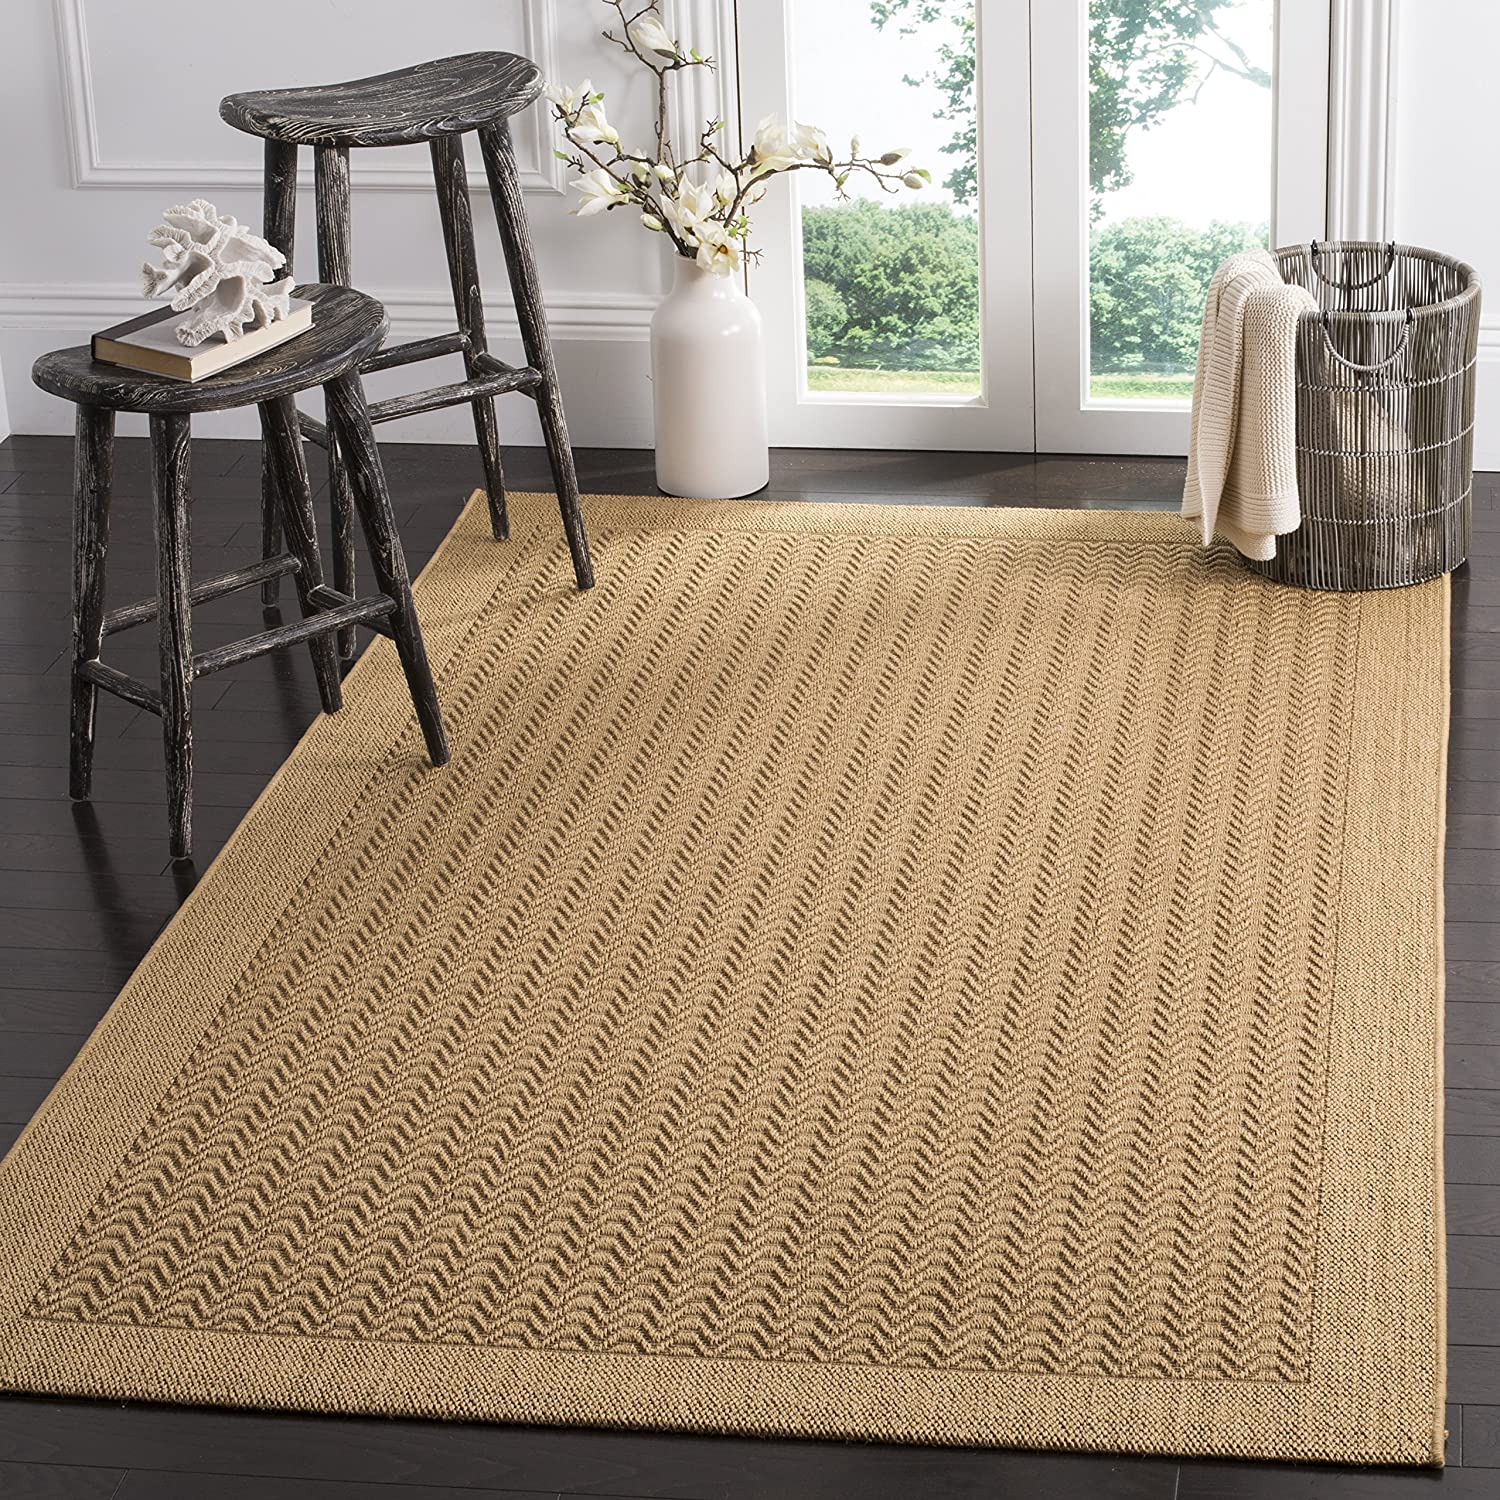 Amazon Com Safavieh Palm Beach Collection Pab321m Sisal Jute Area Rug 5 X 8 Maize Furniture Decor